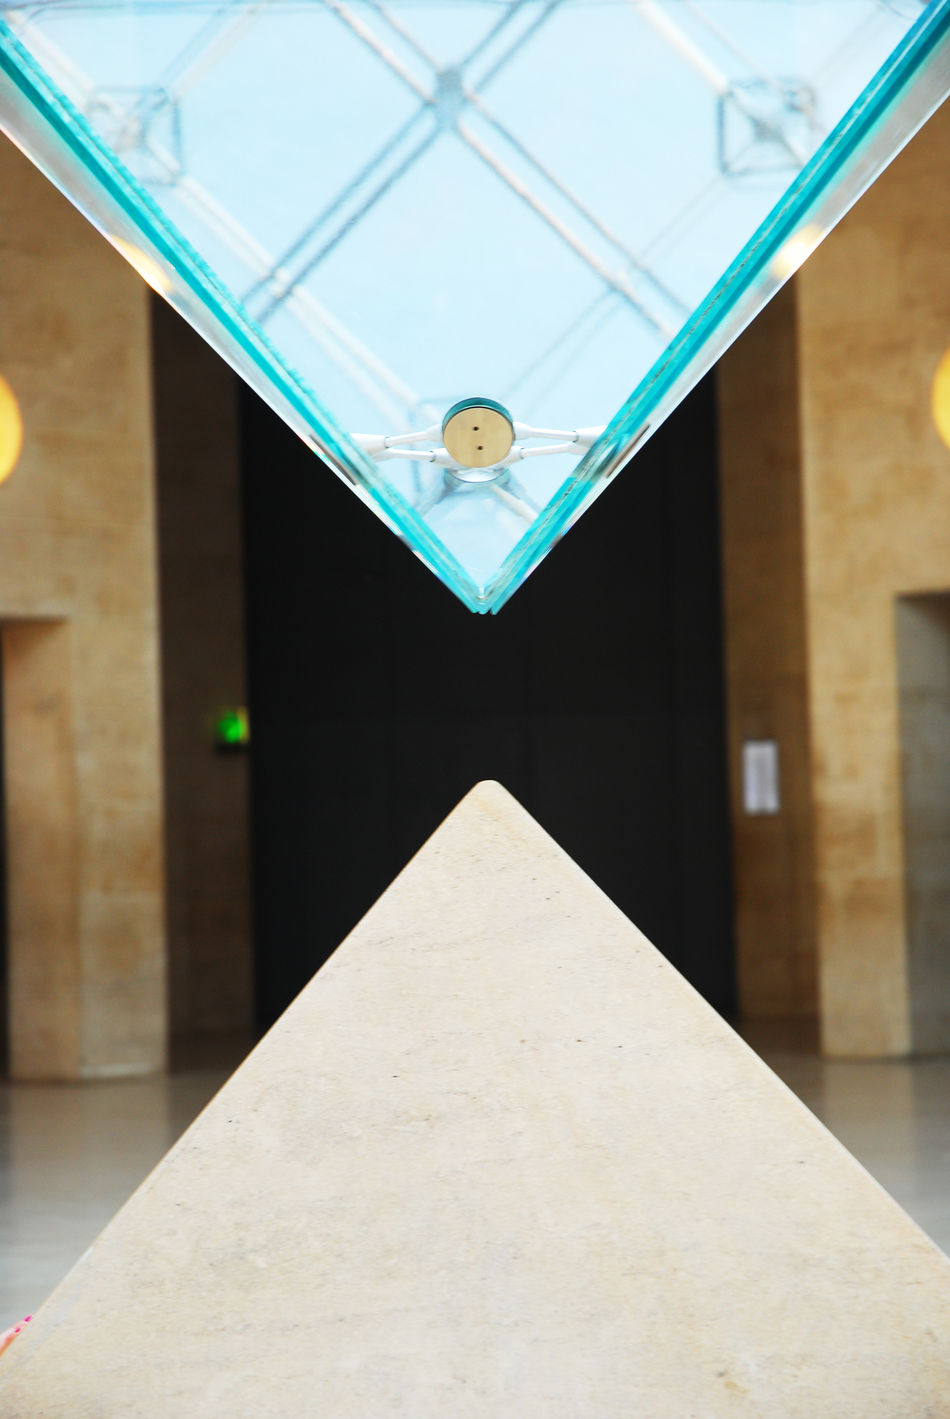 #Pyramide Du Louvre Architectural Feature Ceiling Close-up Day Design Directly Below Geometric Shape Modern No People Tile